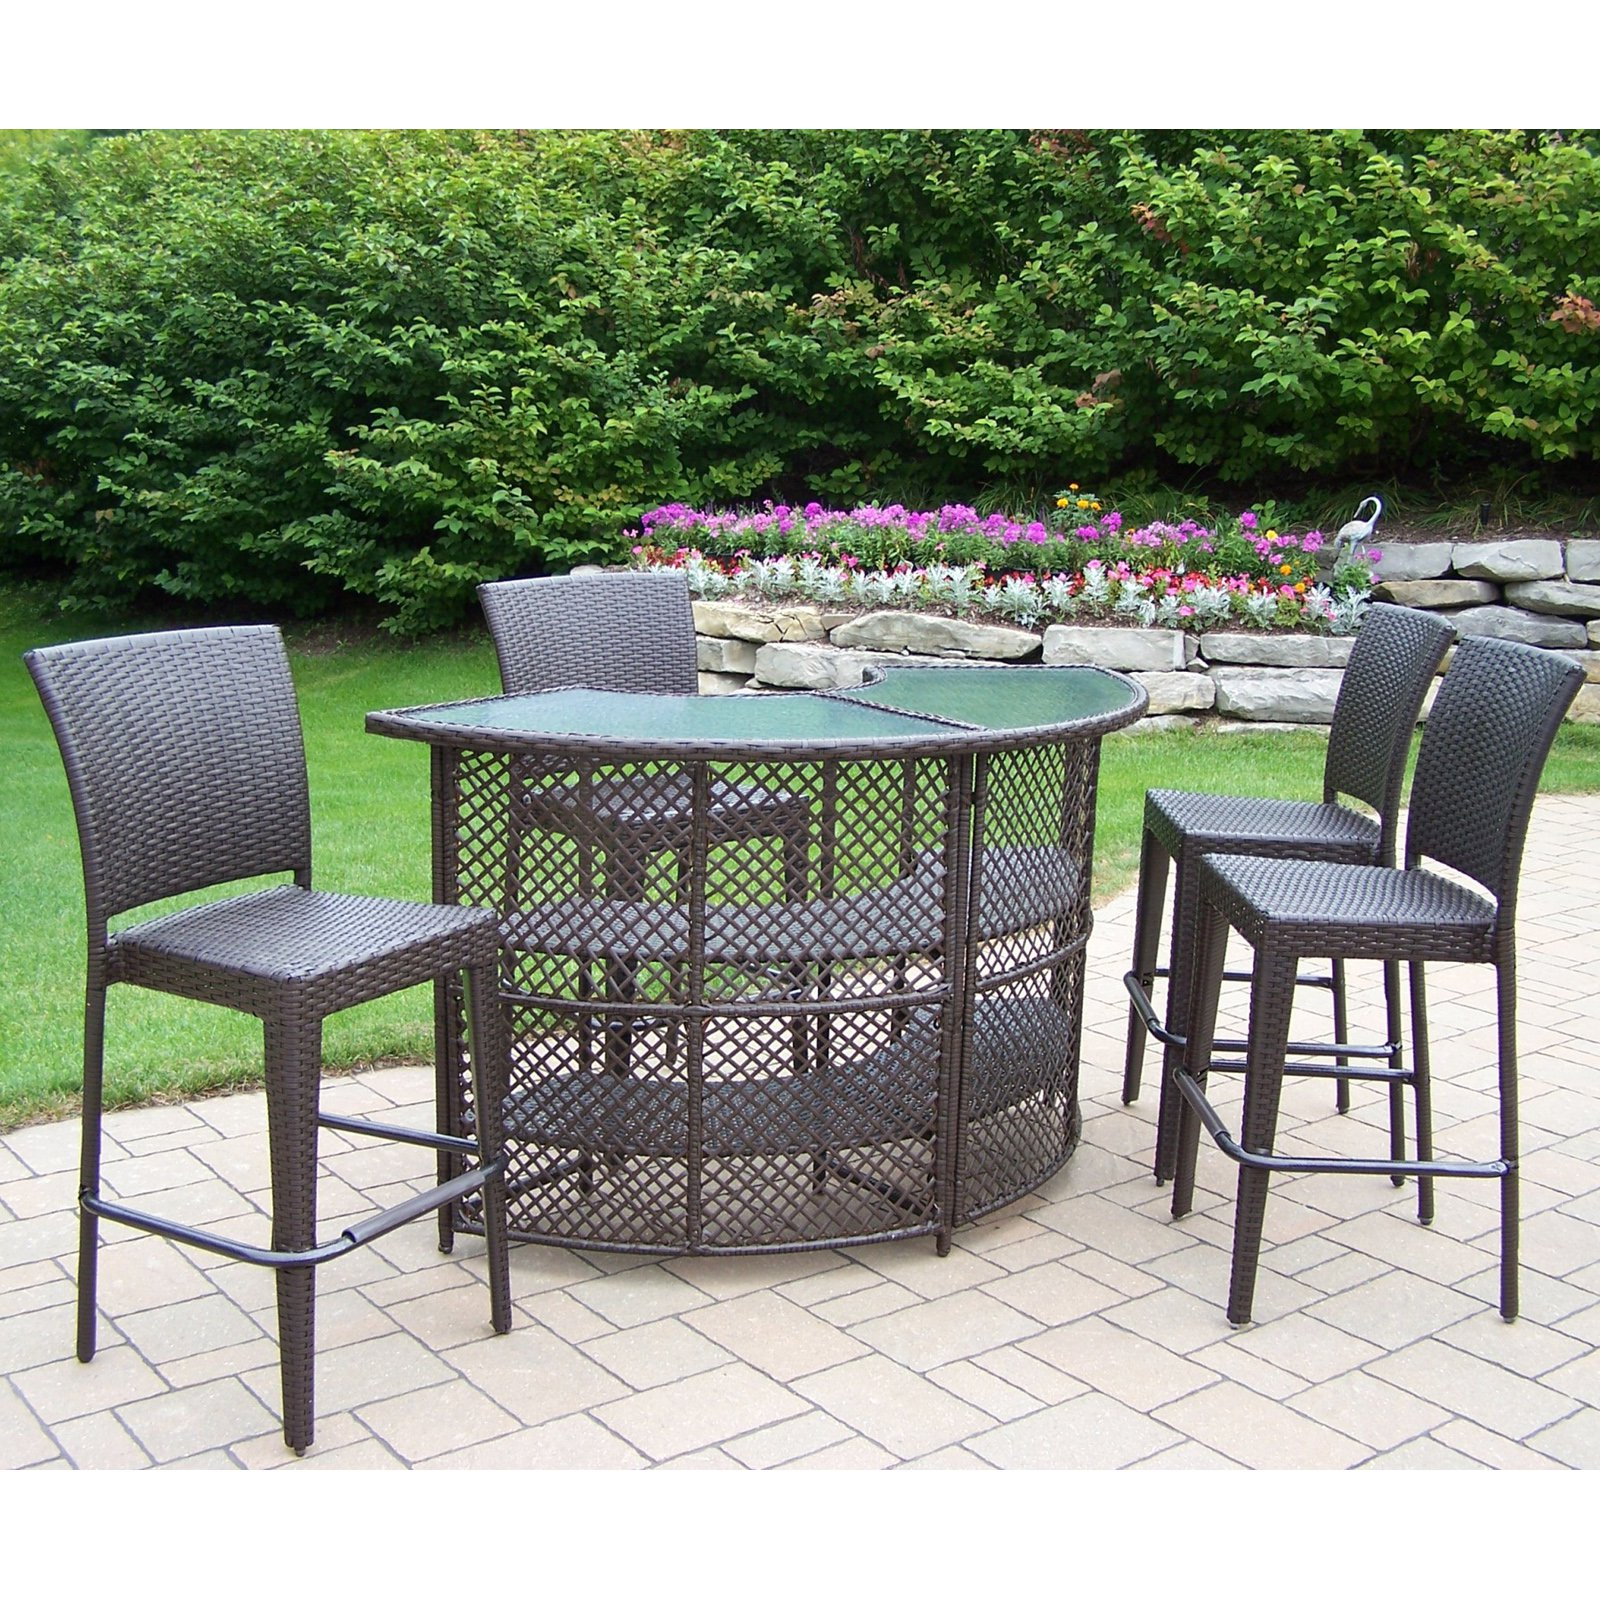 Gentil Oakland Living All Weather Wicker Half Round Patio Bar Set